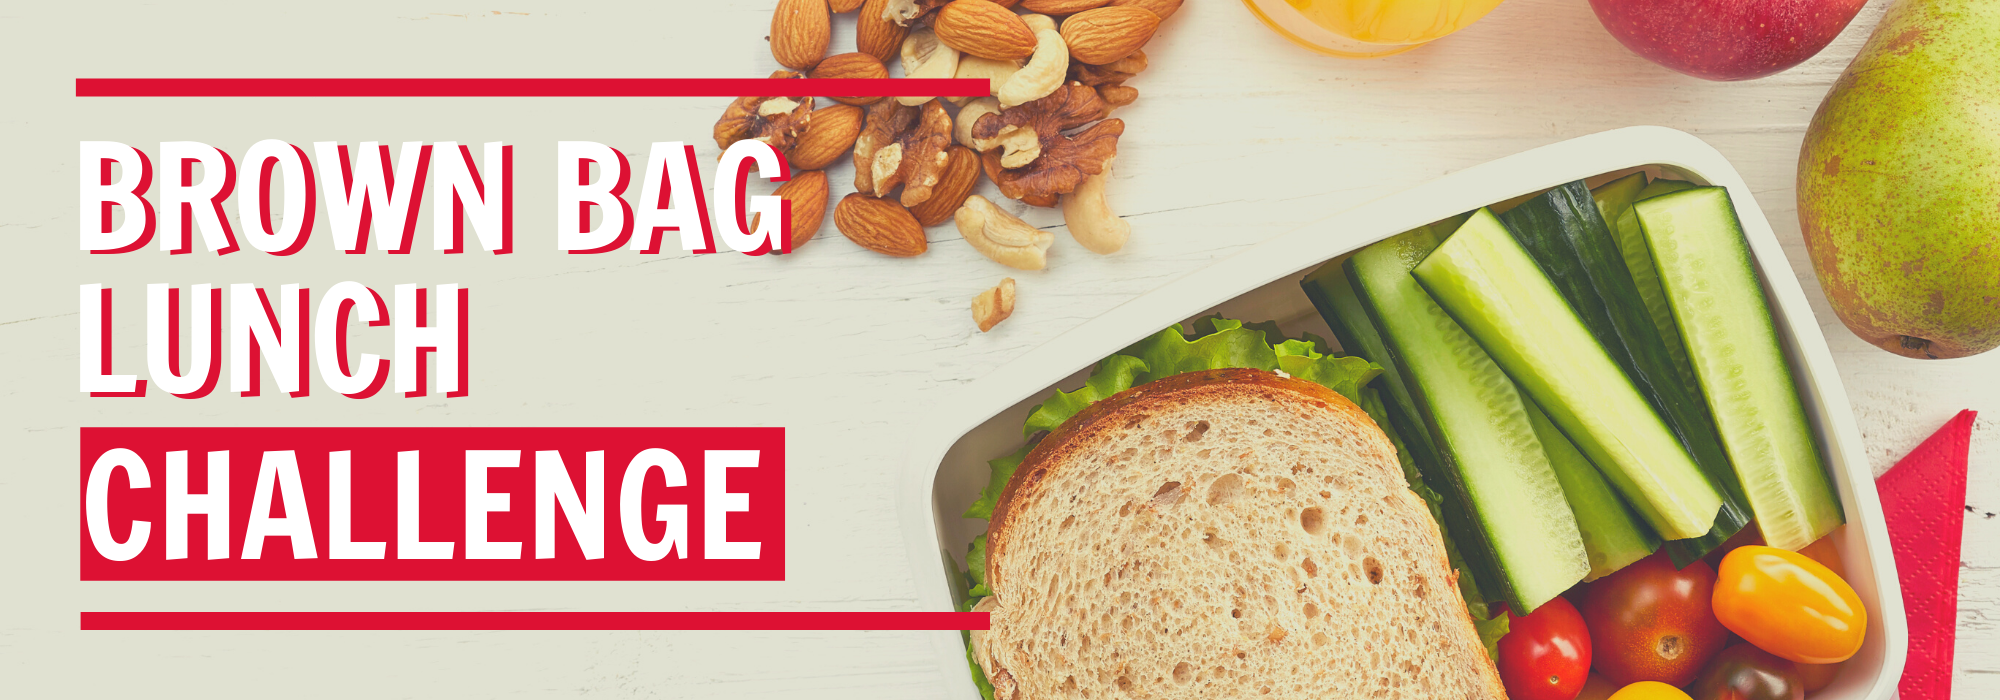 banner graphic - Brown Bag Lunch Challenge